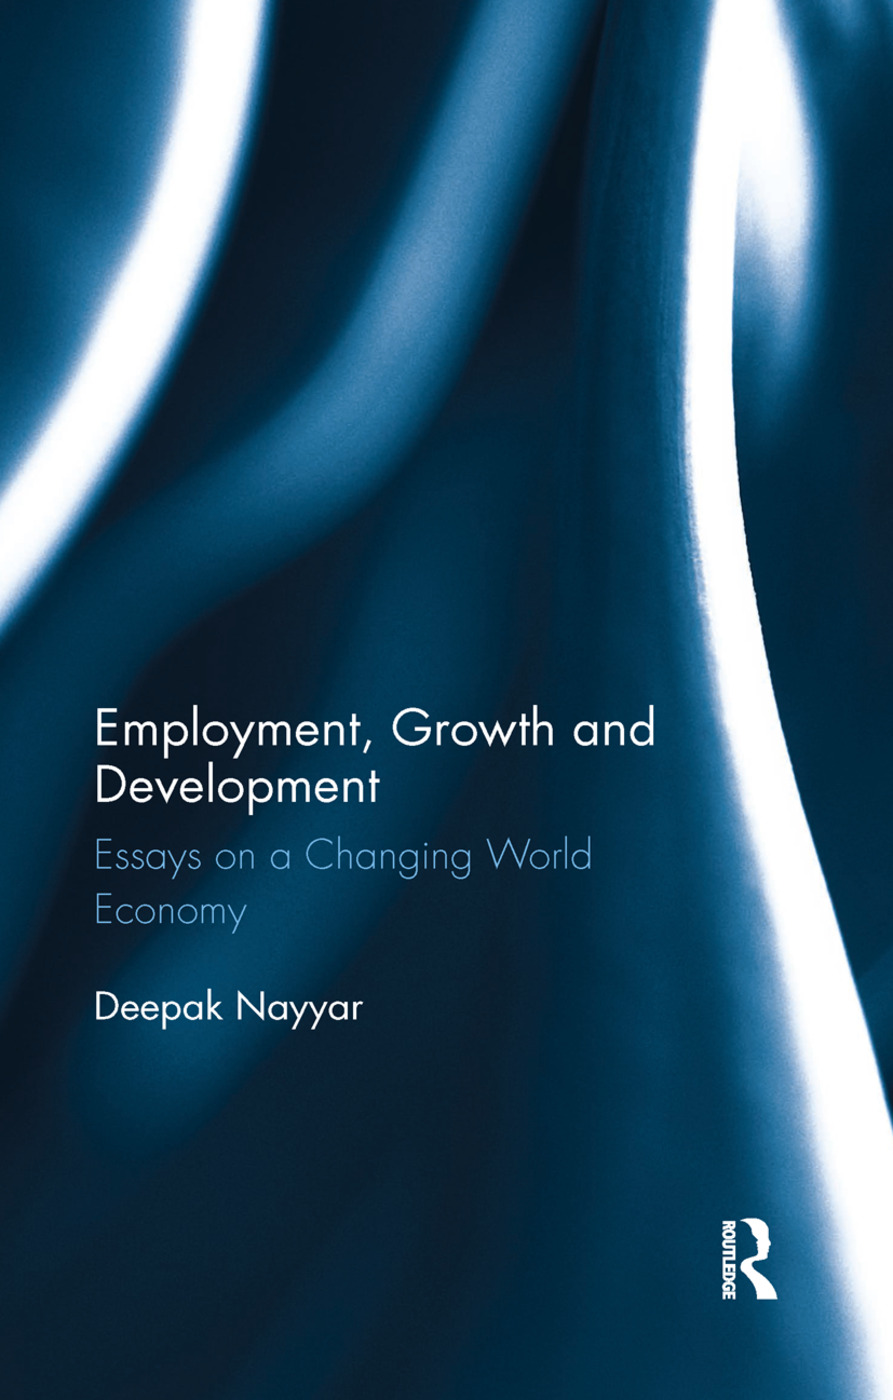 Employment, Growth and Development: Essays on a Changing World Economy book cover